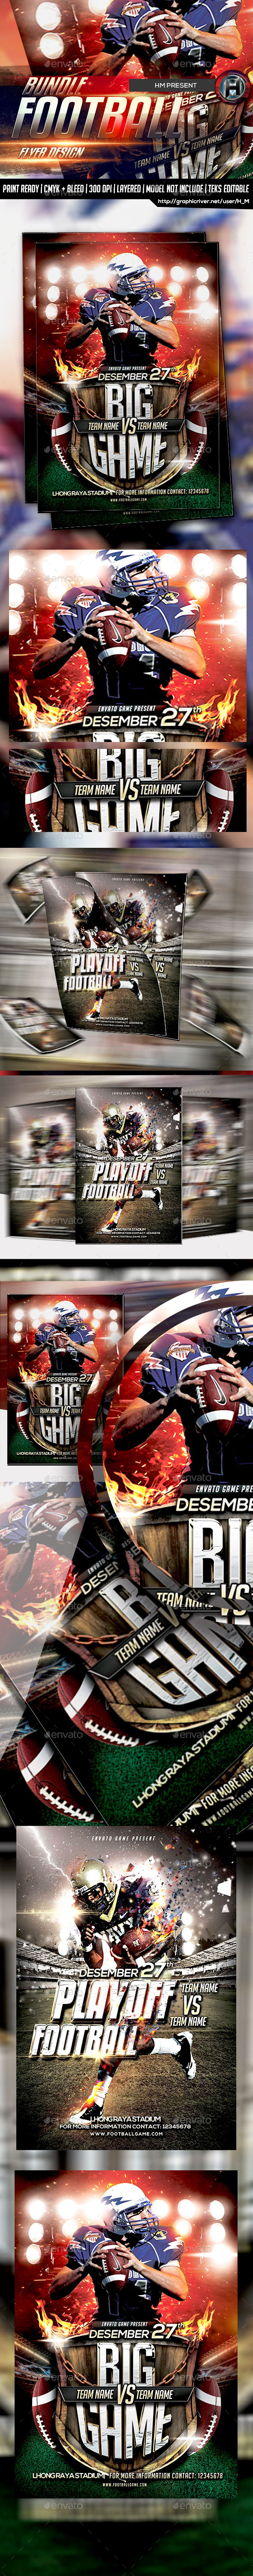 GraphicRiver Football Bundle Flyer 10201162